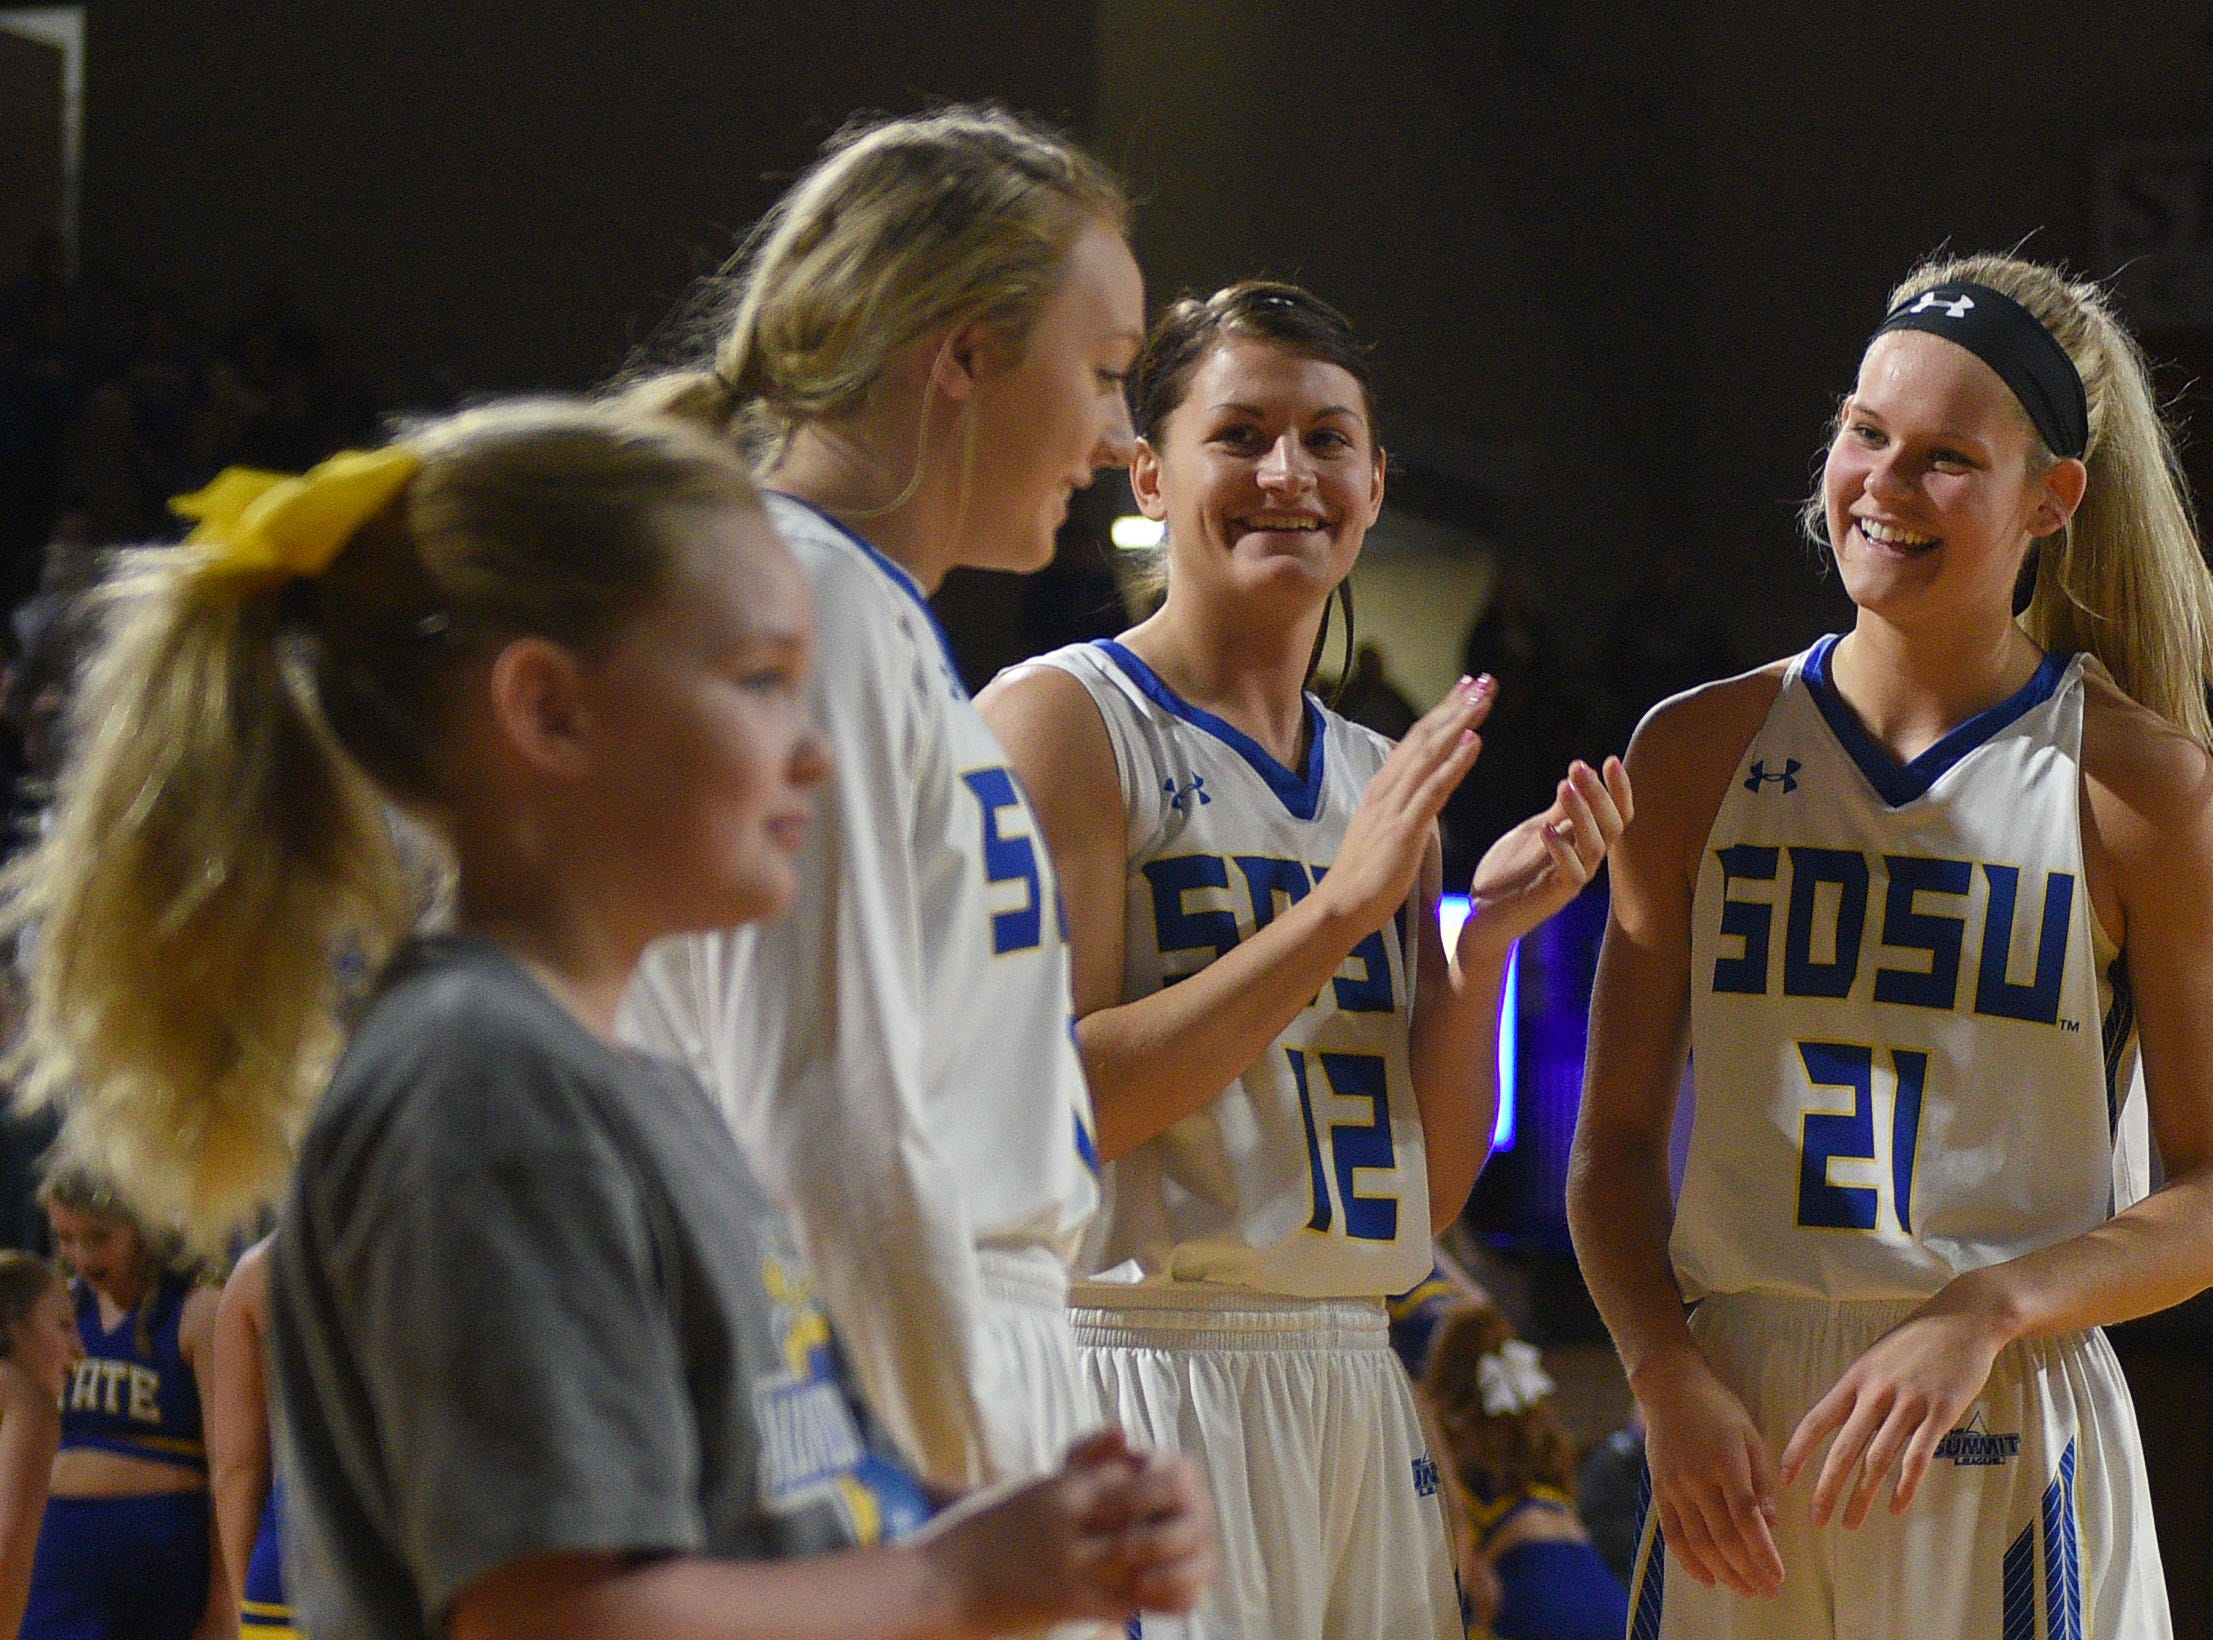 SDSU's Tylee Irwin, far right, joins her teammates on the court before the game against NDSU Wednesday, Jan. 23, at Frost Arena in Brookings.